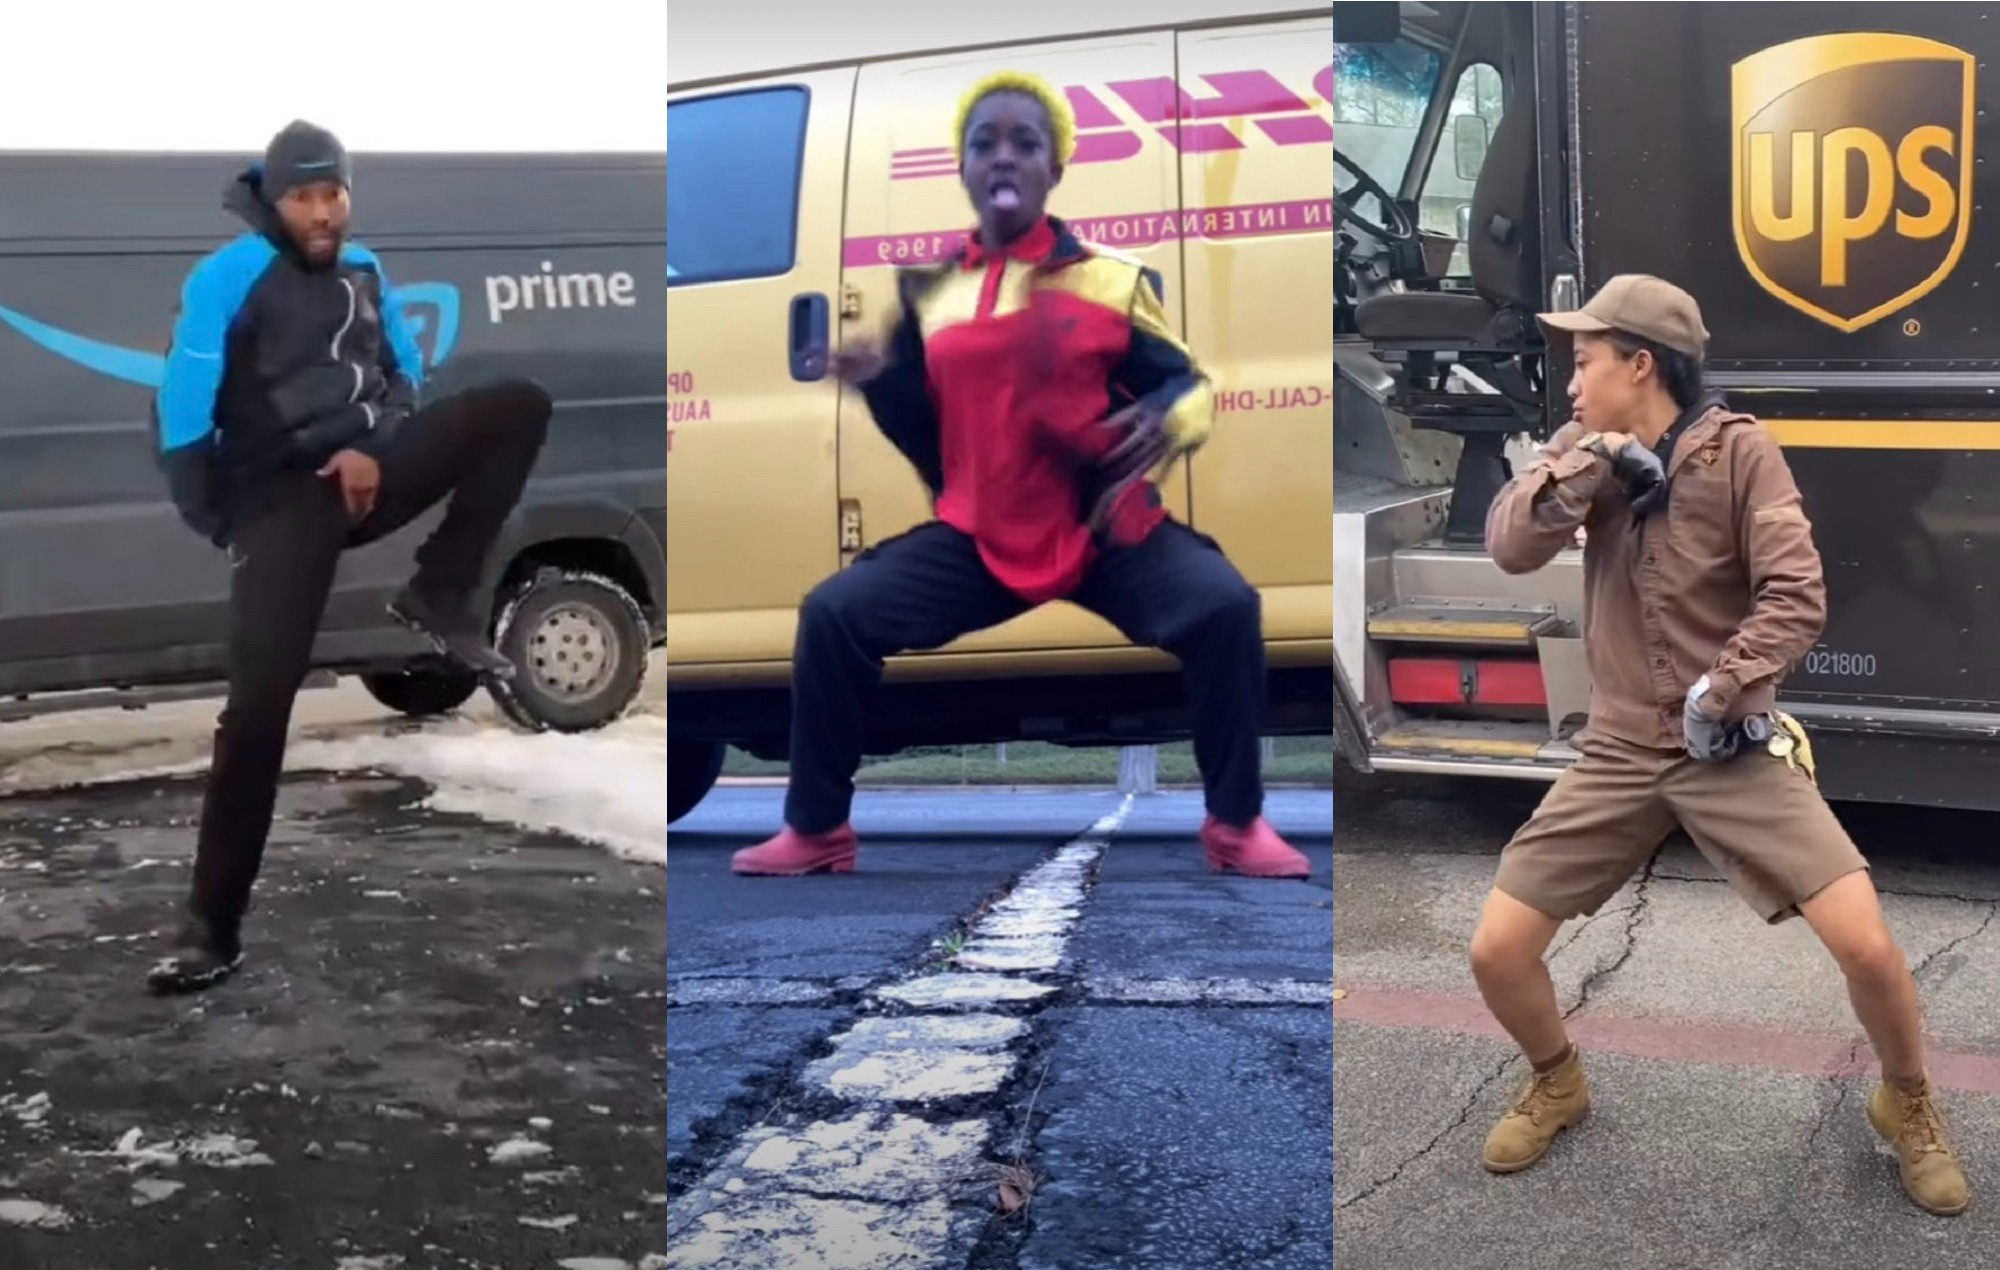 Cardi B's 'Up' soundtracks delivery drivers' dance battle on TikTok